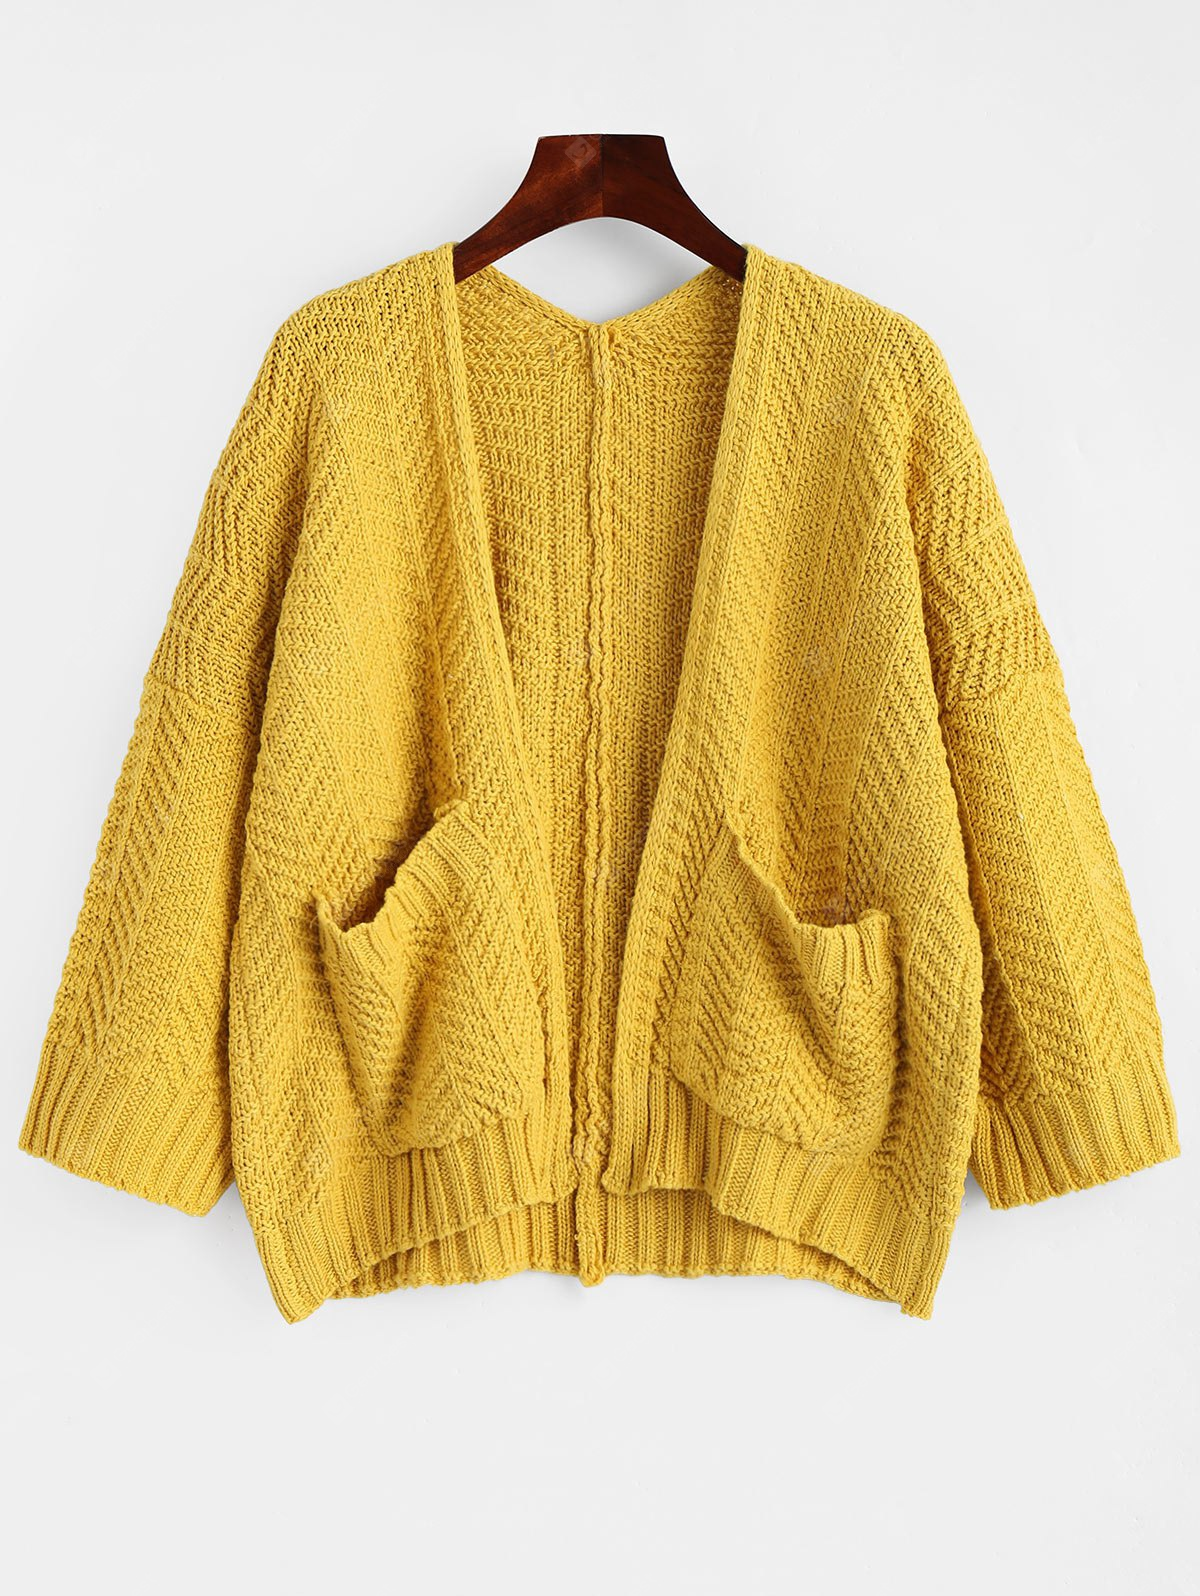 Chunky Knit Open Cardigan with Pockets